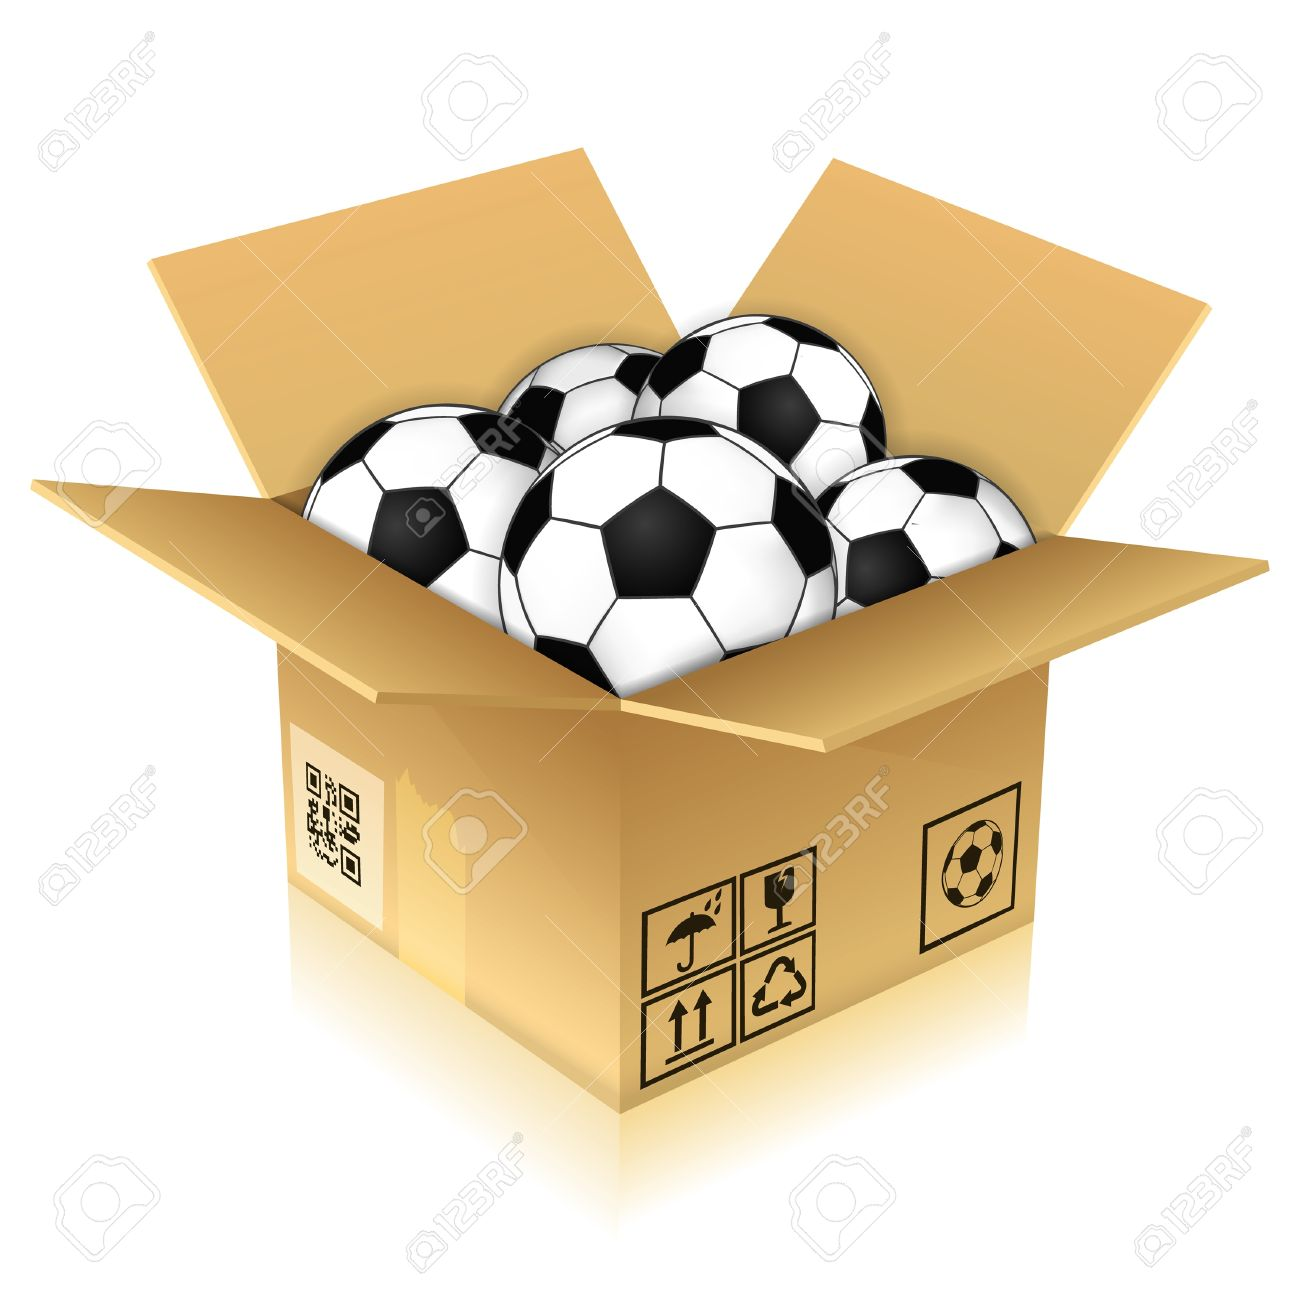 Ball in box clipart clipart free download Ball in the box clipart 3 » Clipart Station clipart free download